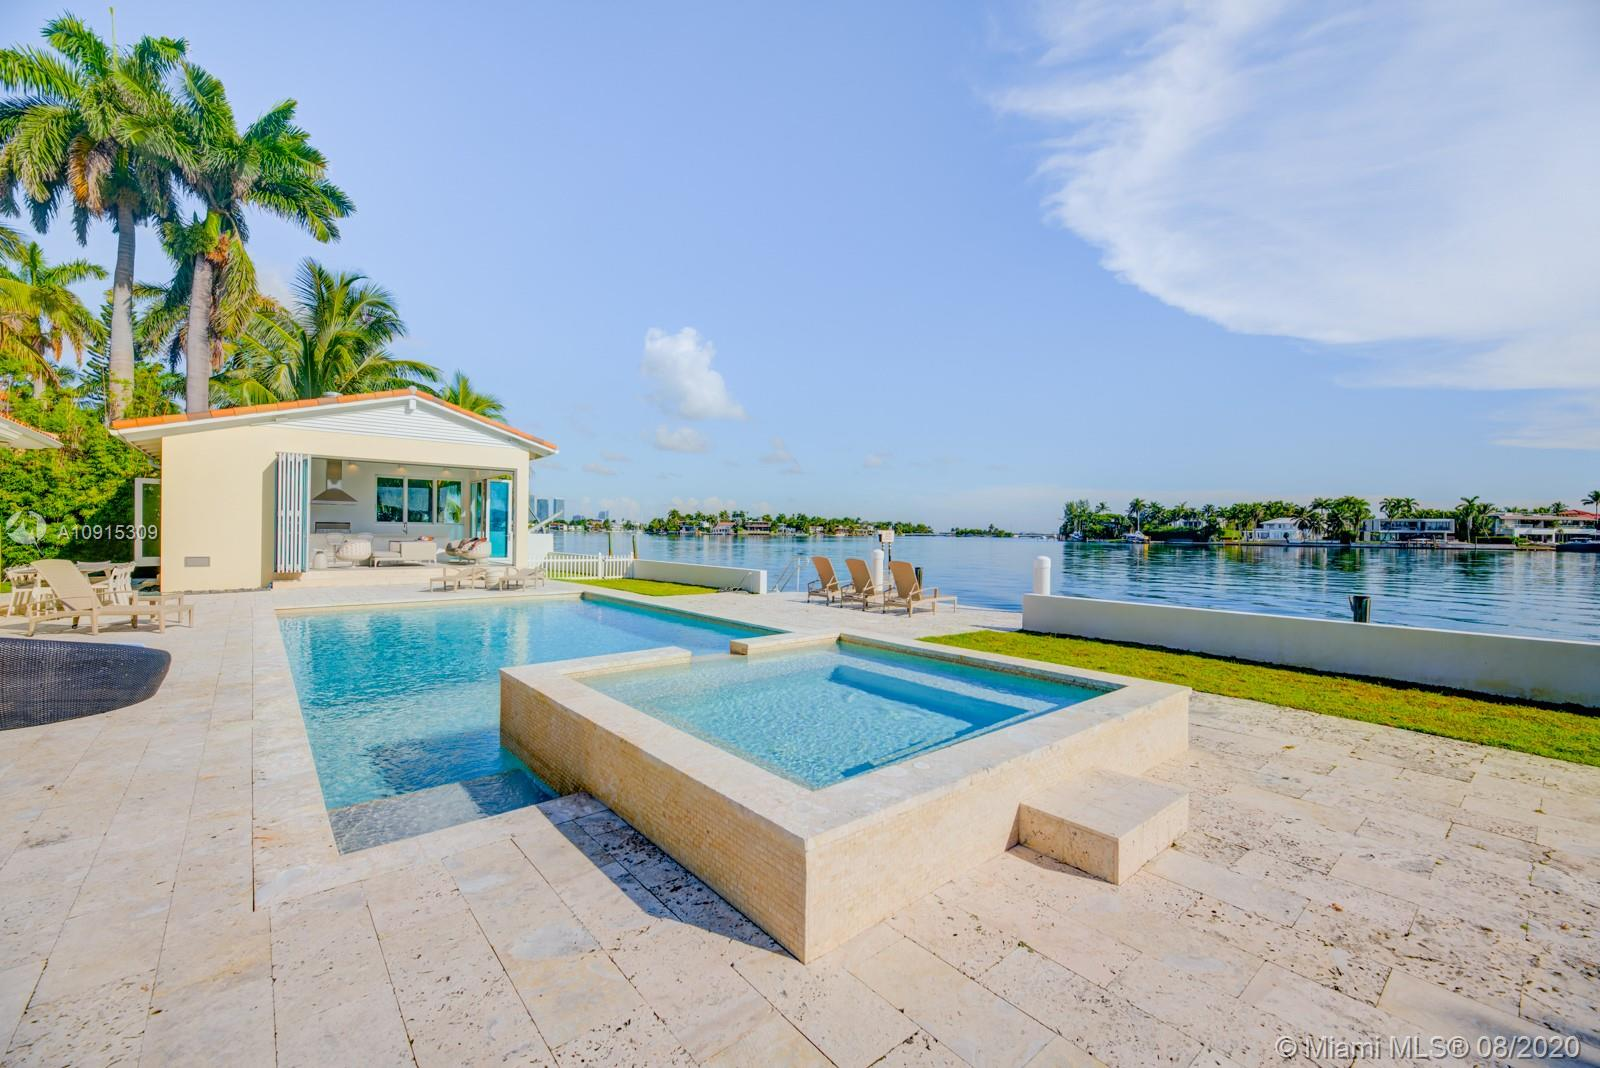 Welcome to one of the most luxurious and prestigious waterfront homes on Hibiscus Island Miami Beach! This waterfront property faces North with open waterways and 120 Feet of water frontage to fit your yacht and jet skis. The home is tastefully remodeled with floor to ceiling high impact windows, new kitchen with Wolf appliances and new bathrooms. It also features an indoor BBQ grill Cabana with a fully equipped kitchen and bathroom for your guests. The pool and jacuzzi have also been remodeled and updated with a new pool deck. The home is 3,488 sq ft living space on a 21,000 sqft Lot, equipped with state of the art security cameras and entertainment system. The property is fully gated along with a 24hr manned police officer at the main gate giving you high level security.